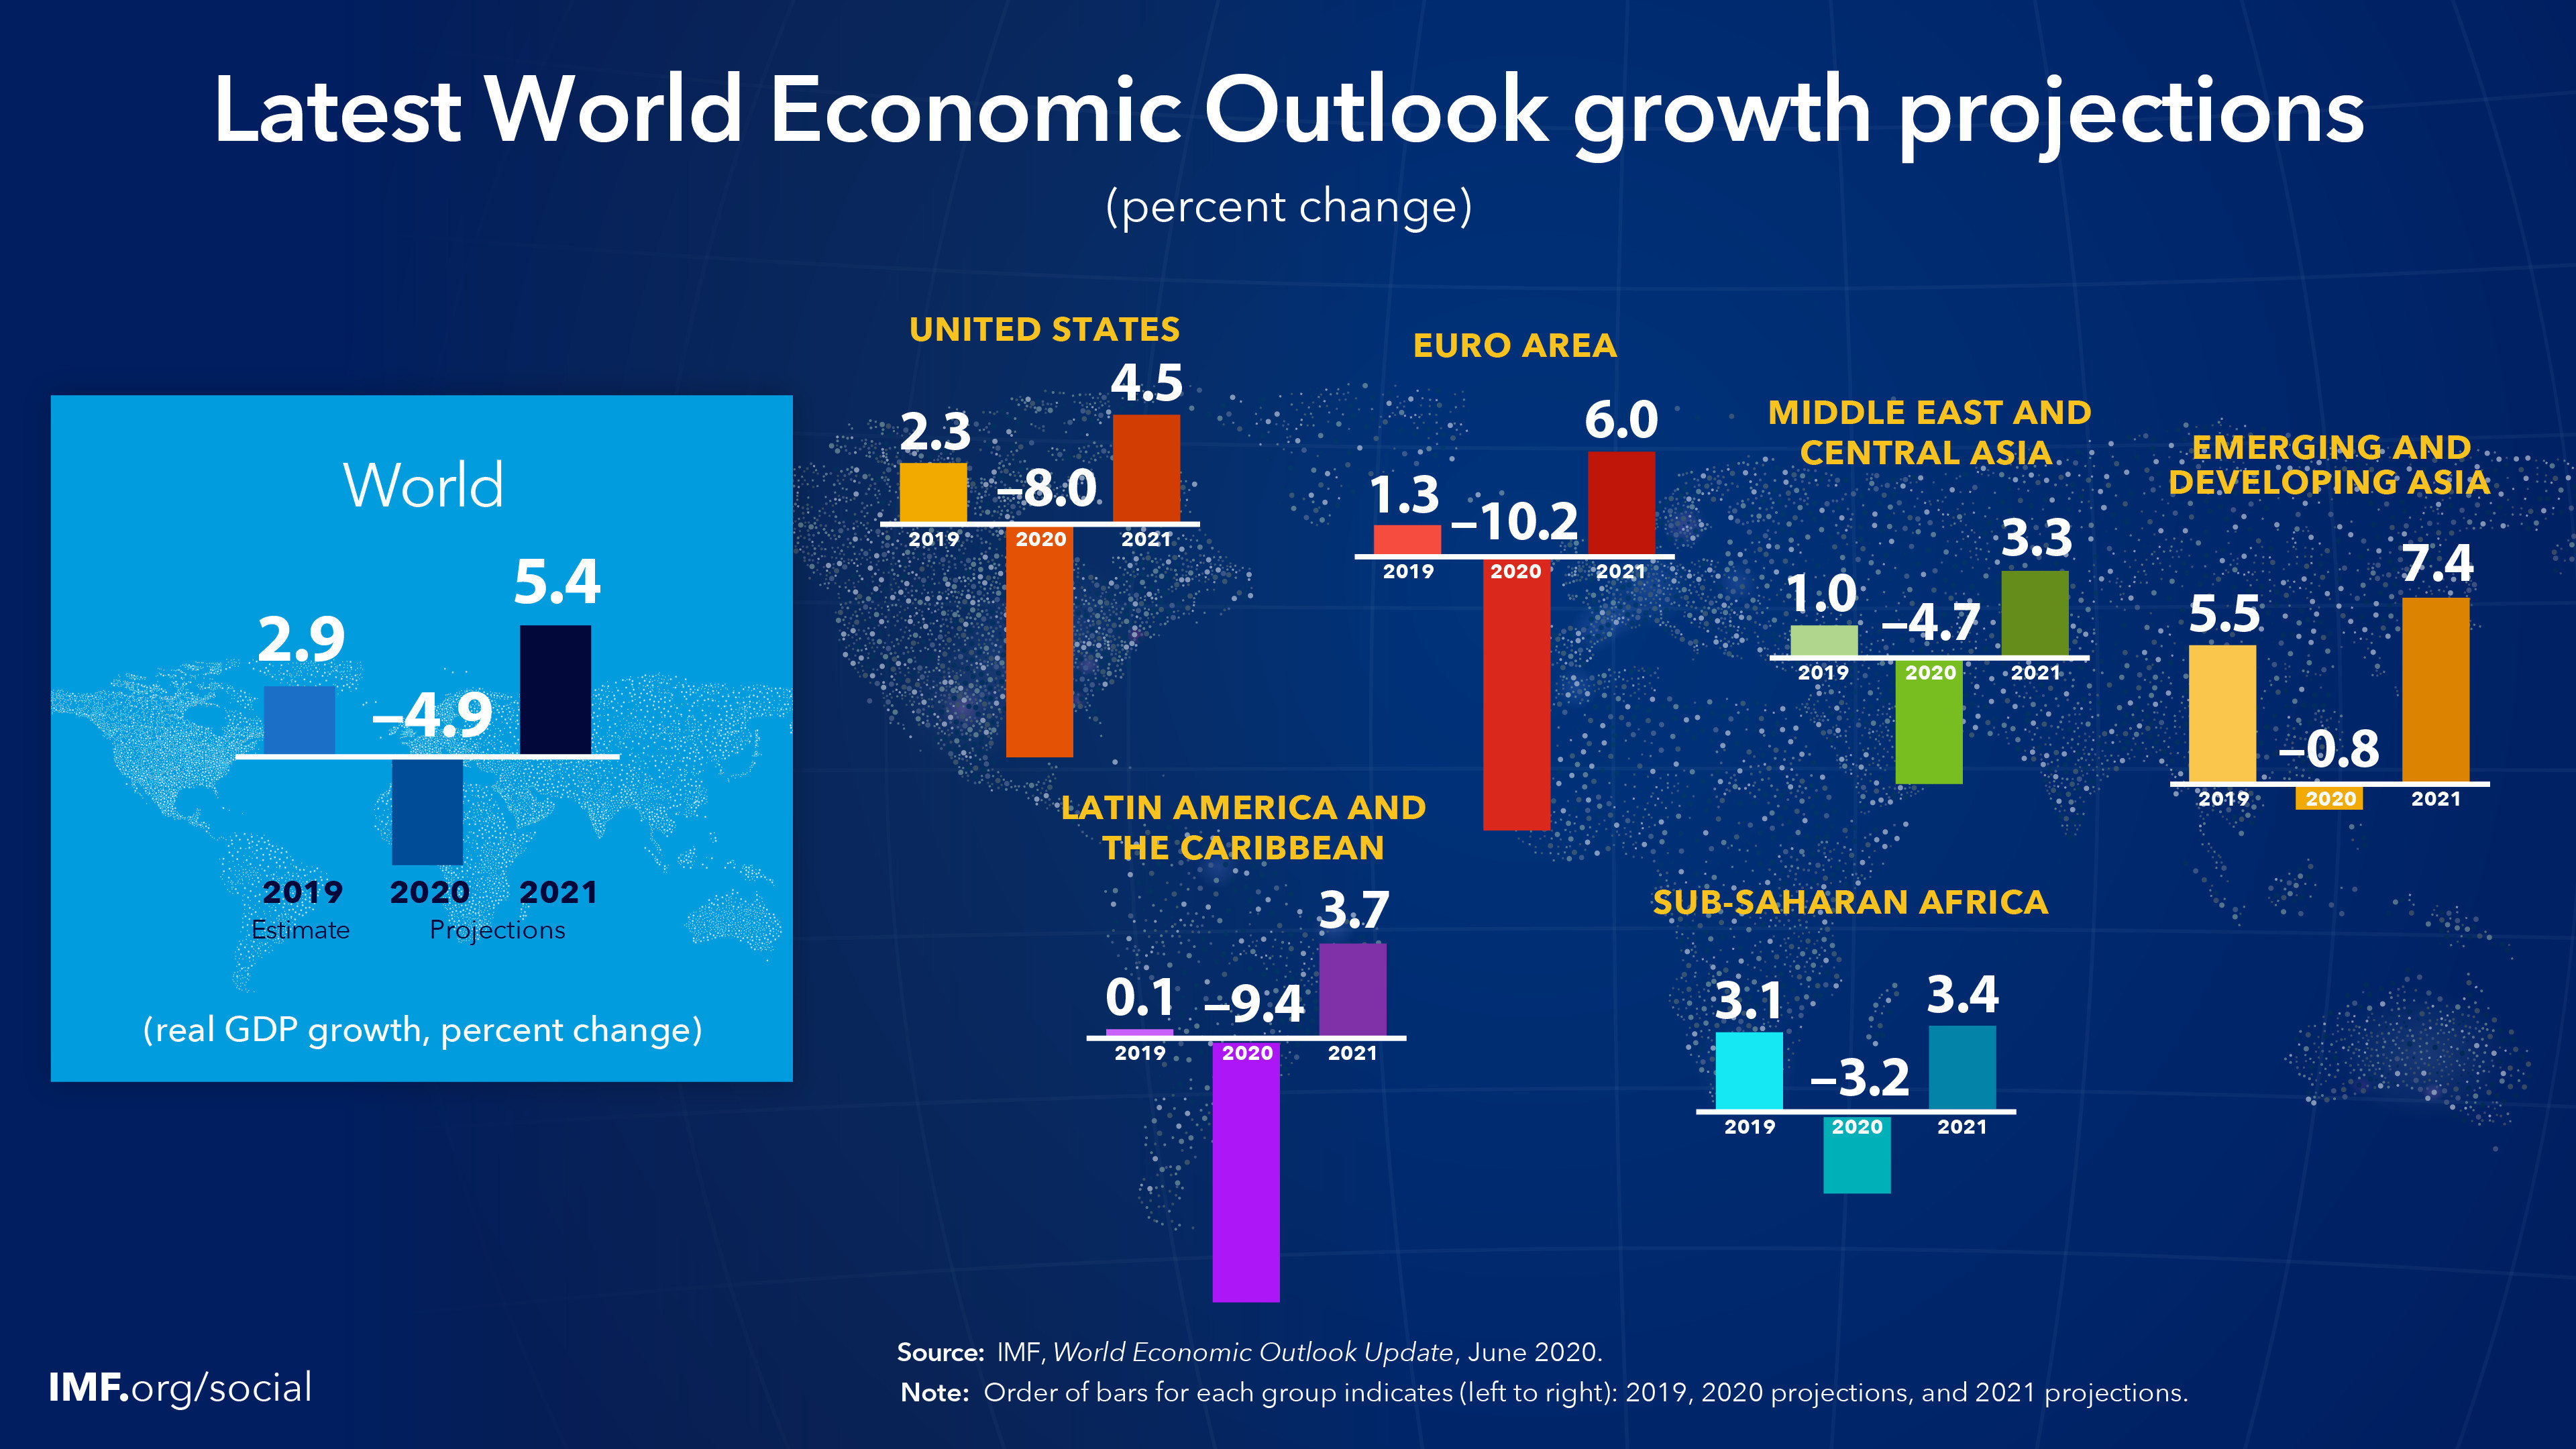 a chart showing the global economic growth predictions by region